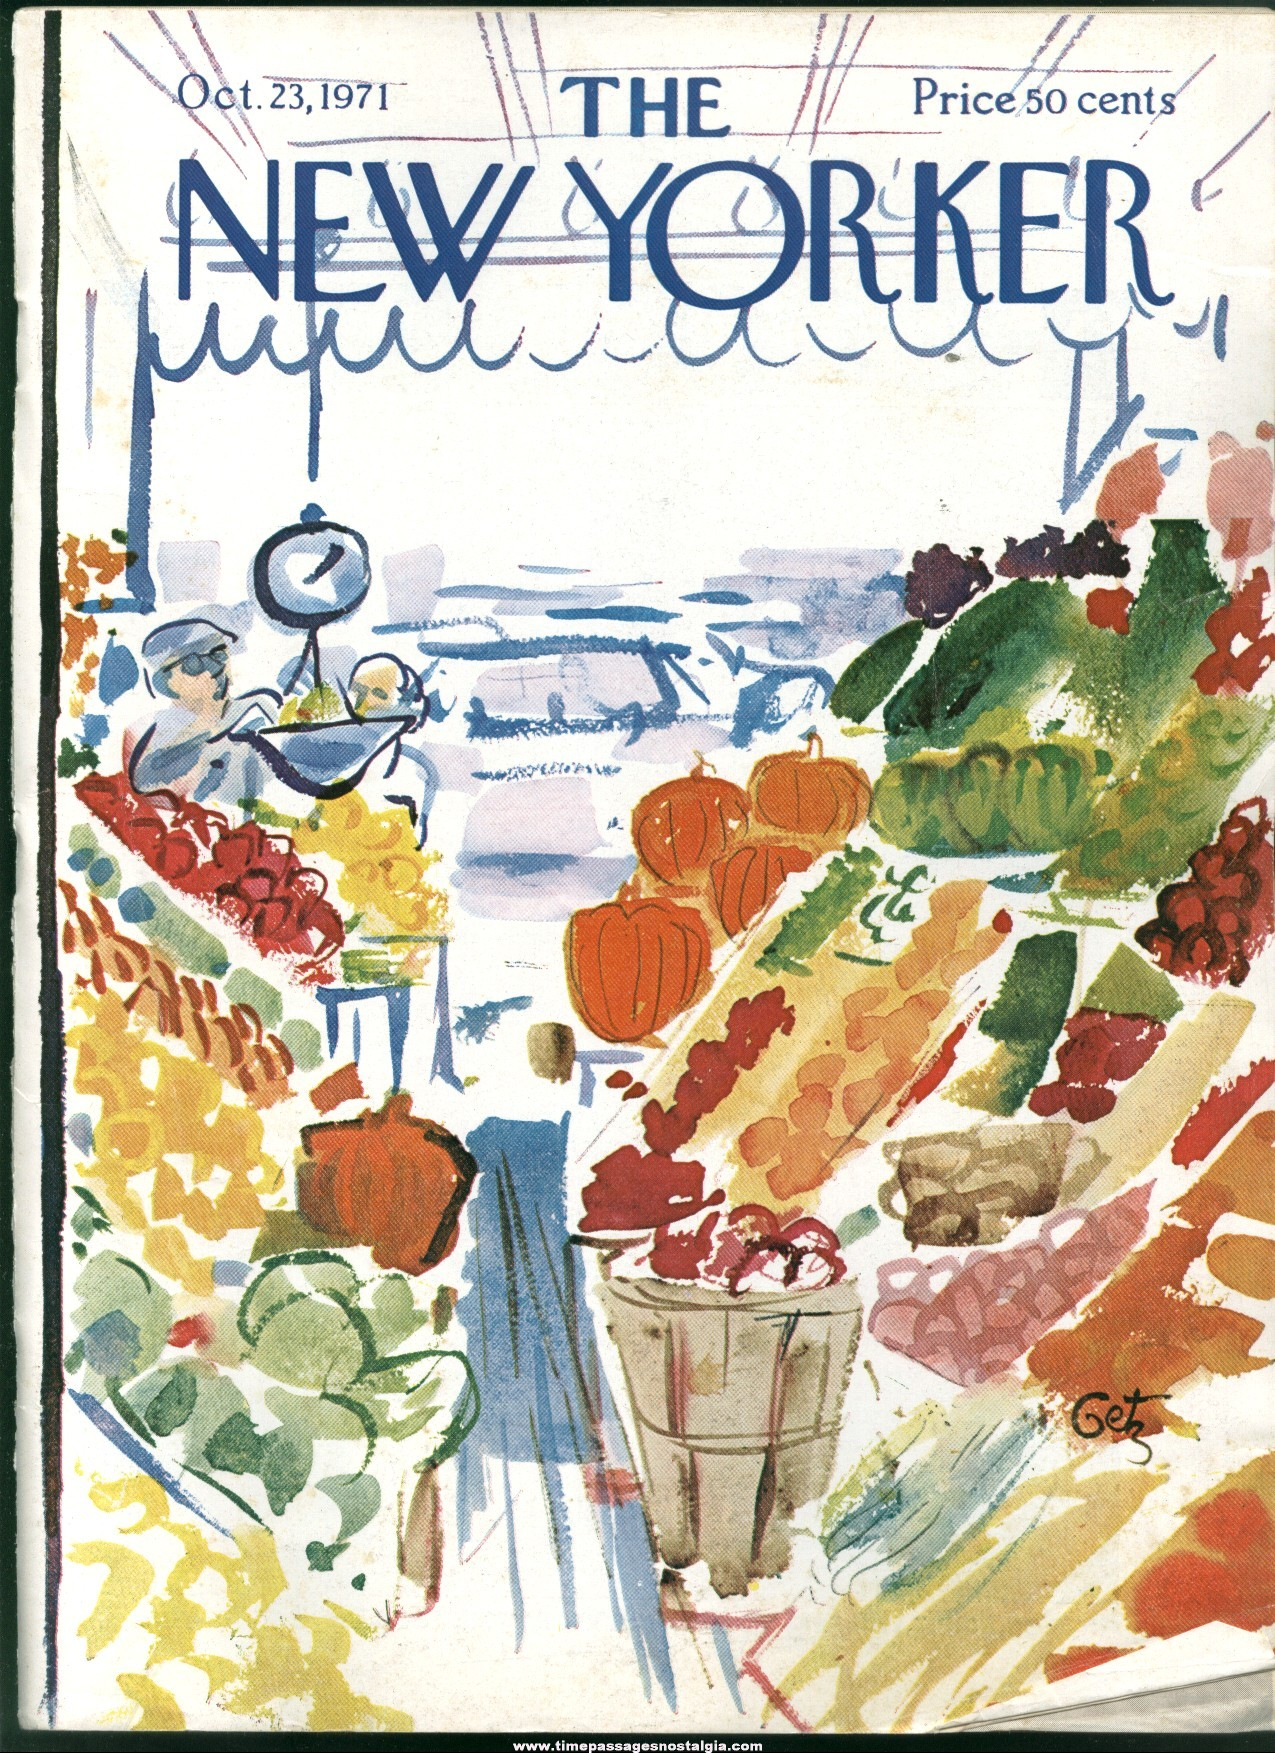 New Yorker Magazine - October 23, 1971 - Cover by Arthur Getz